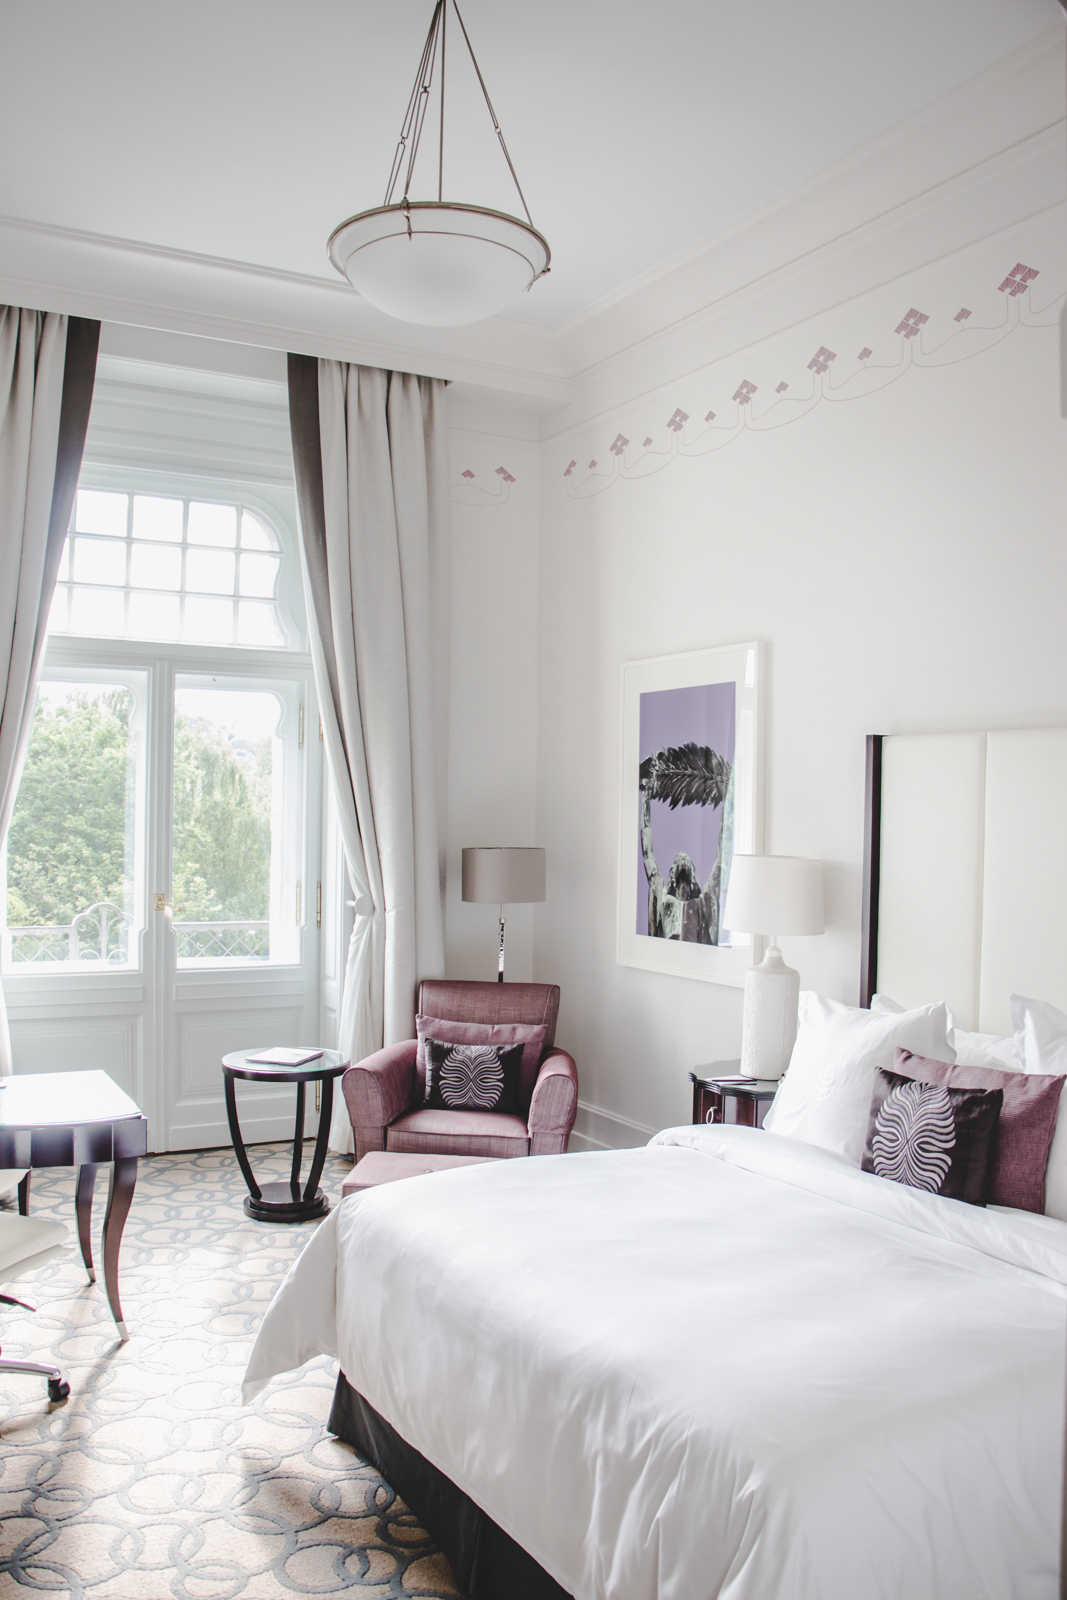 Four Seasons Gresham Palace budapest hotel review blog wrap your lips around this